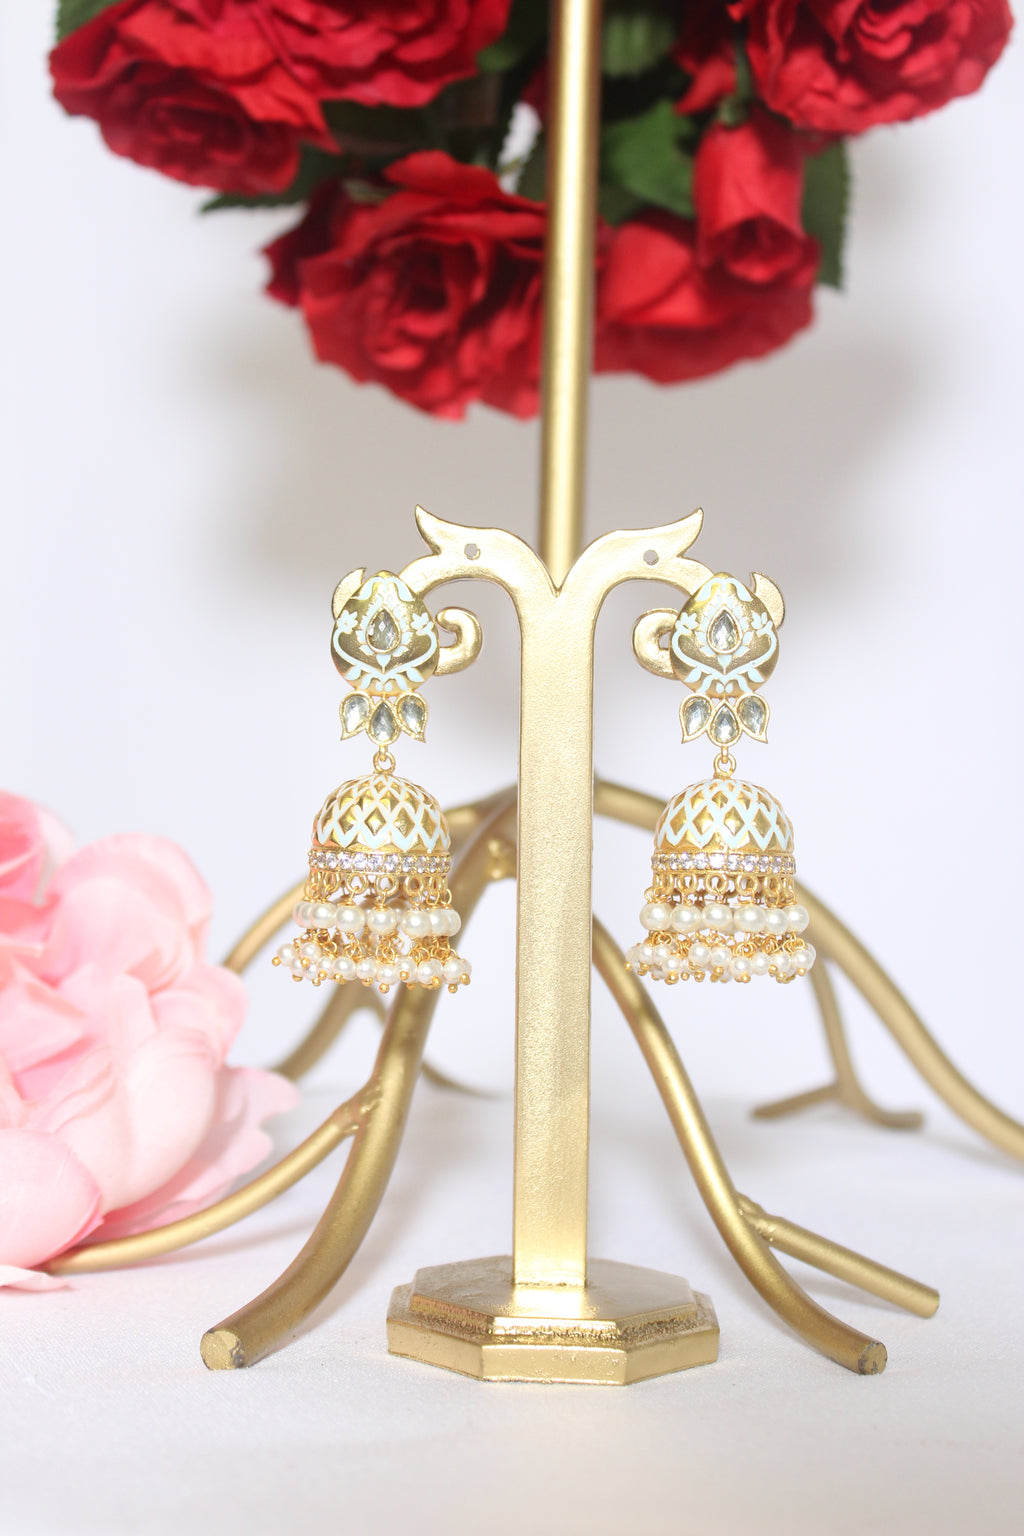 White & gold meenakari jhumki earrings with pearl